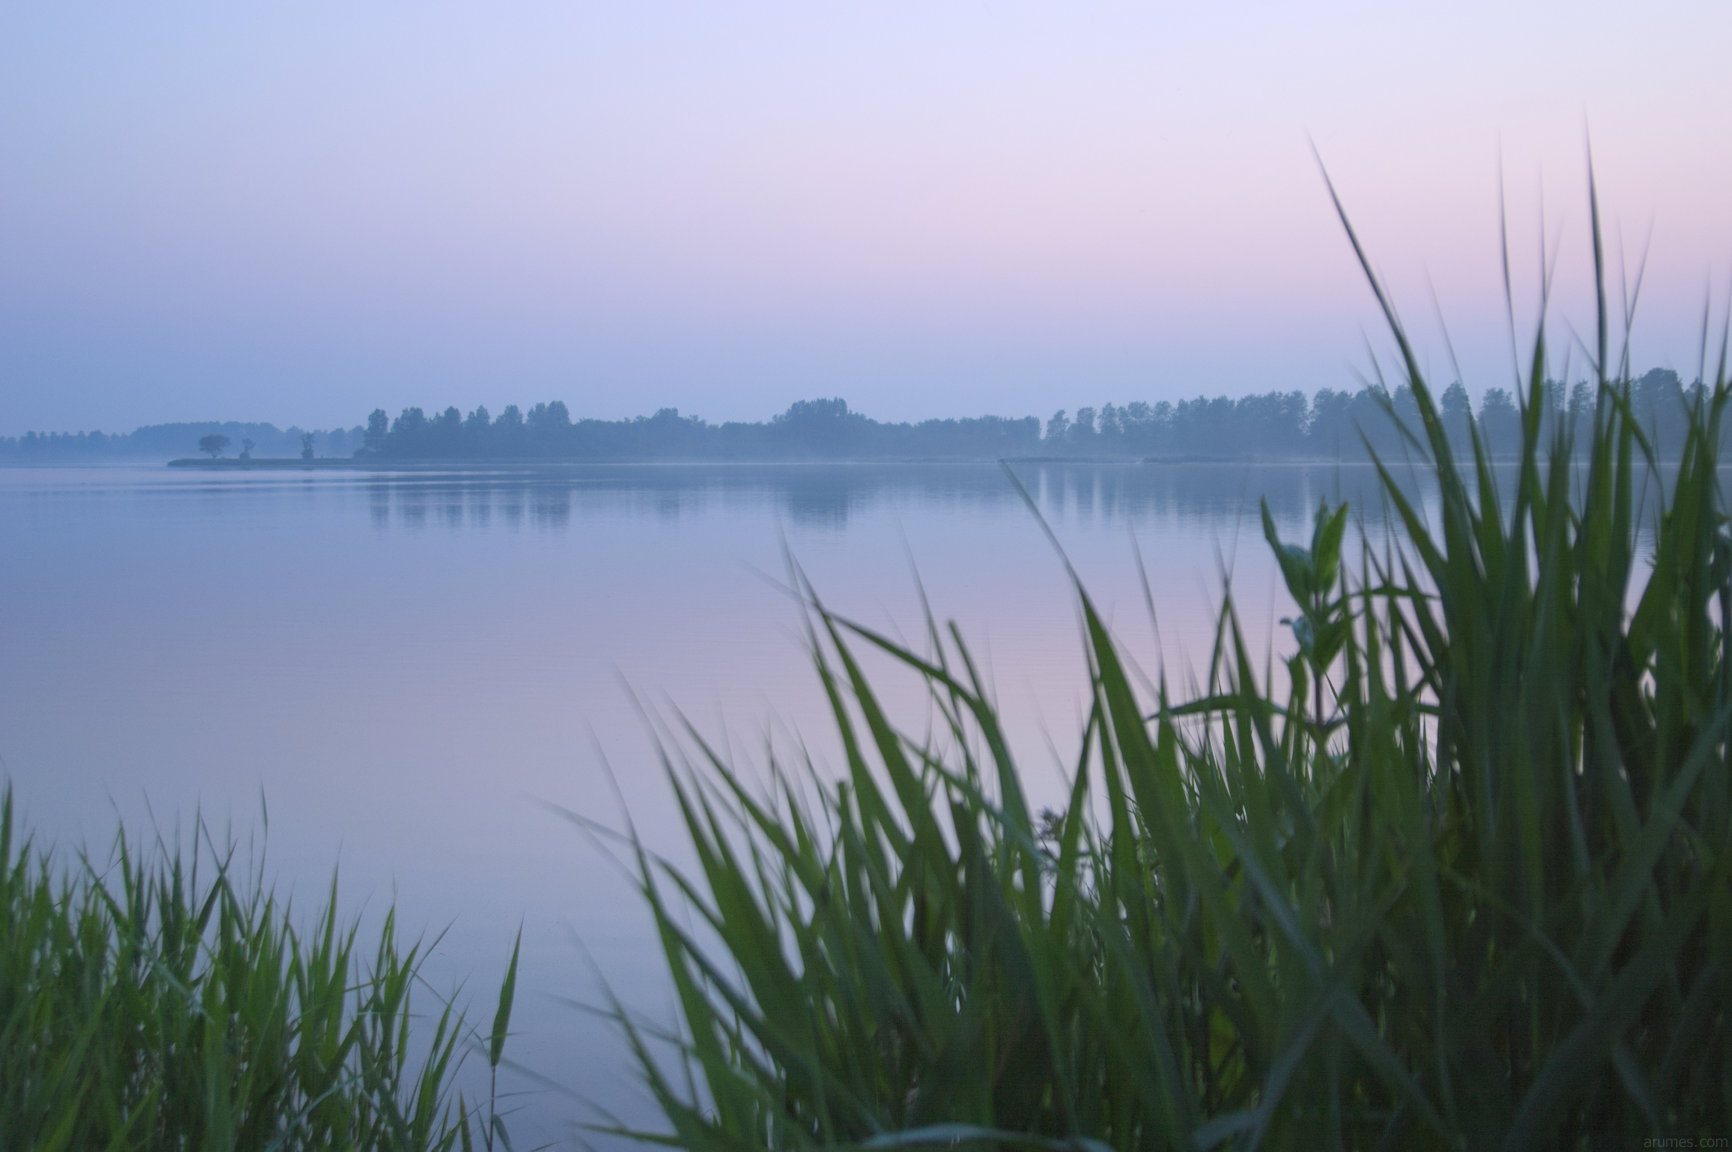 Tranquil lake in early morning